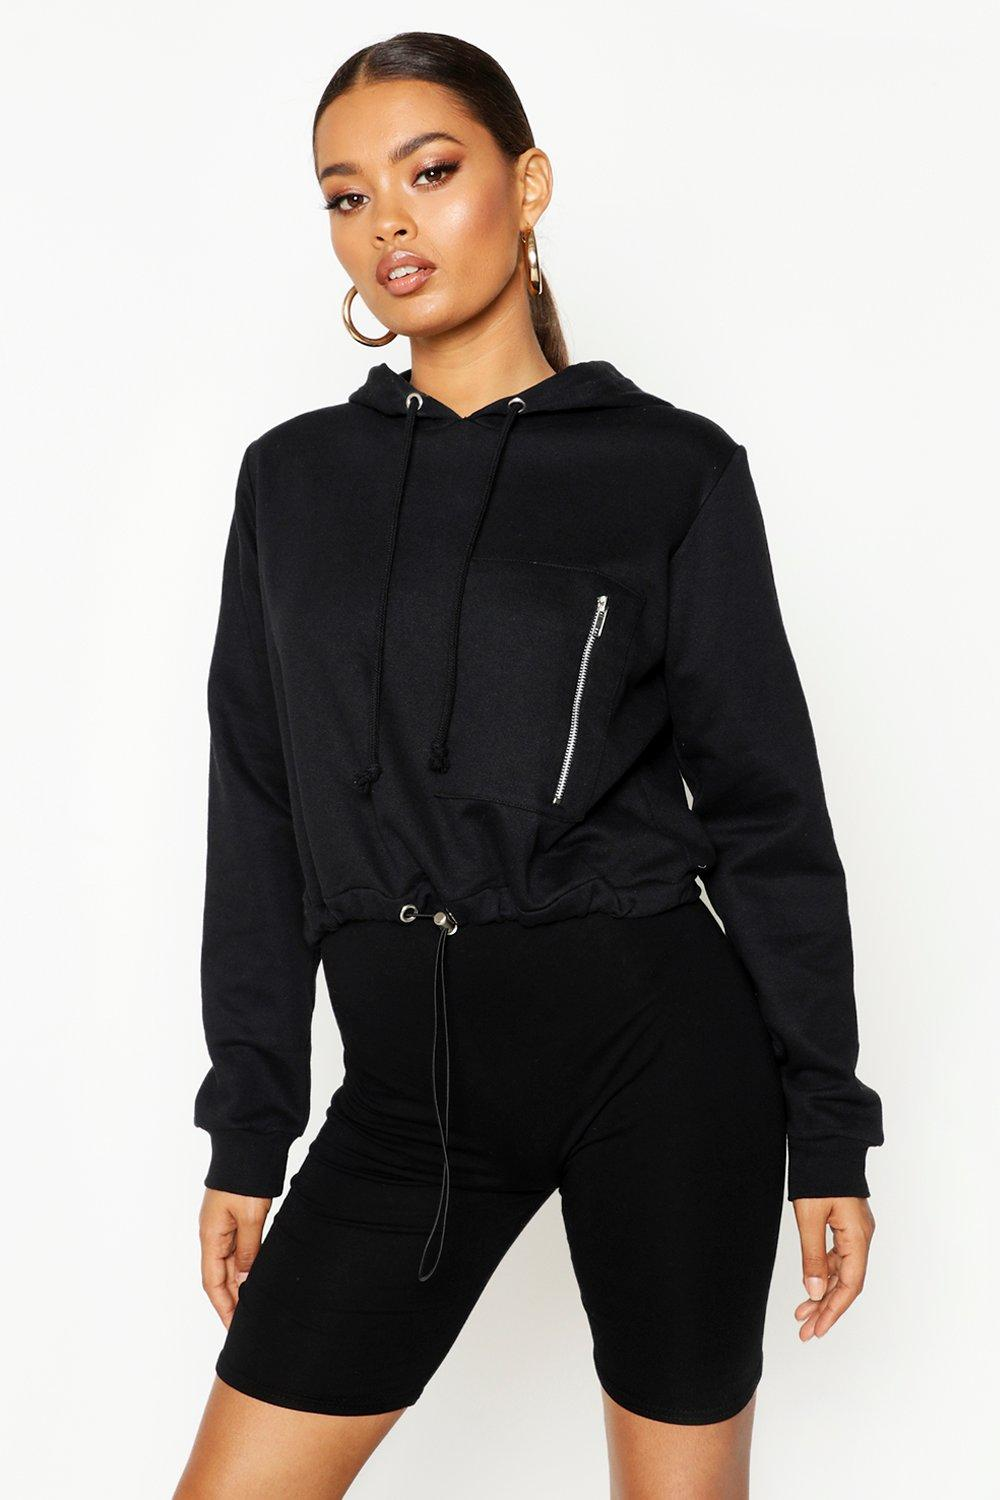 boohoo Womens Utility Pocket Hoody - Black - M, Black